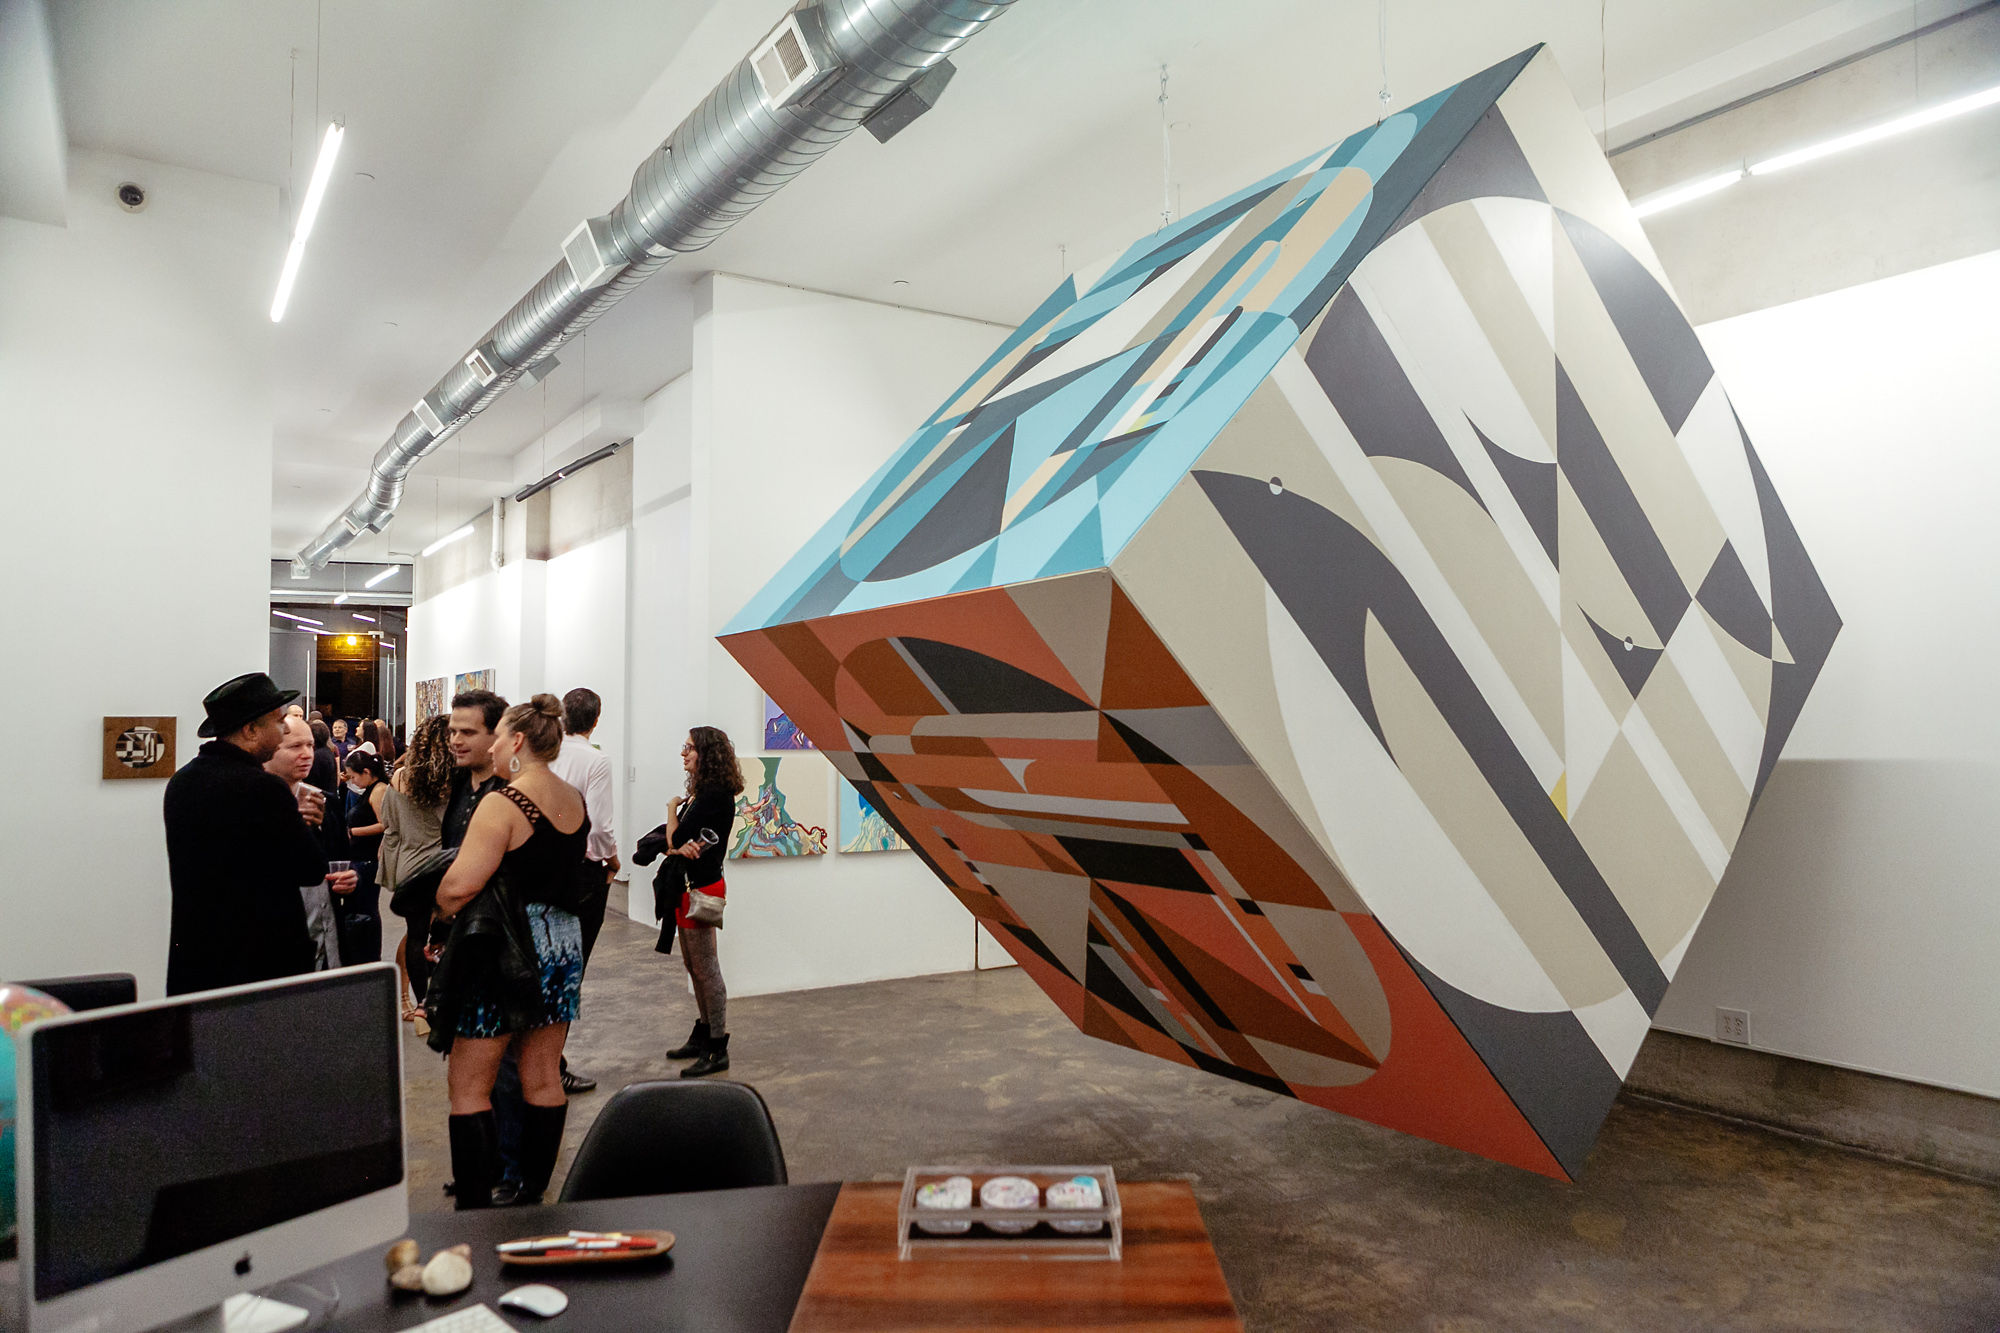 Exhibition in Cube Gallery in New York, 2014.